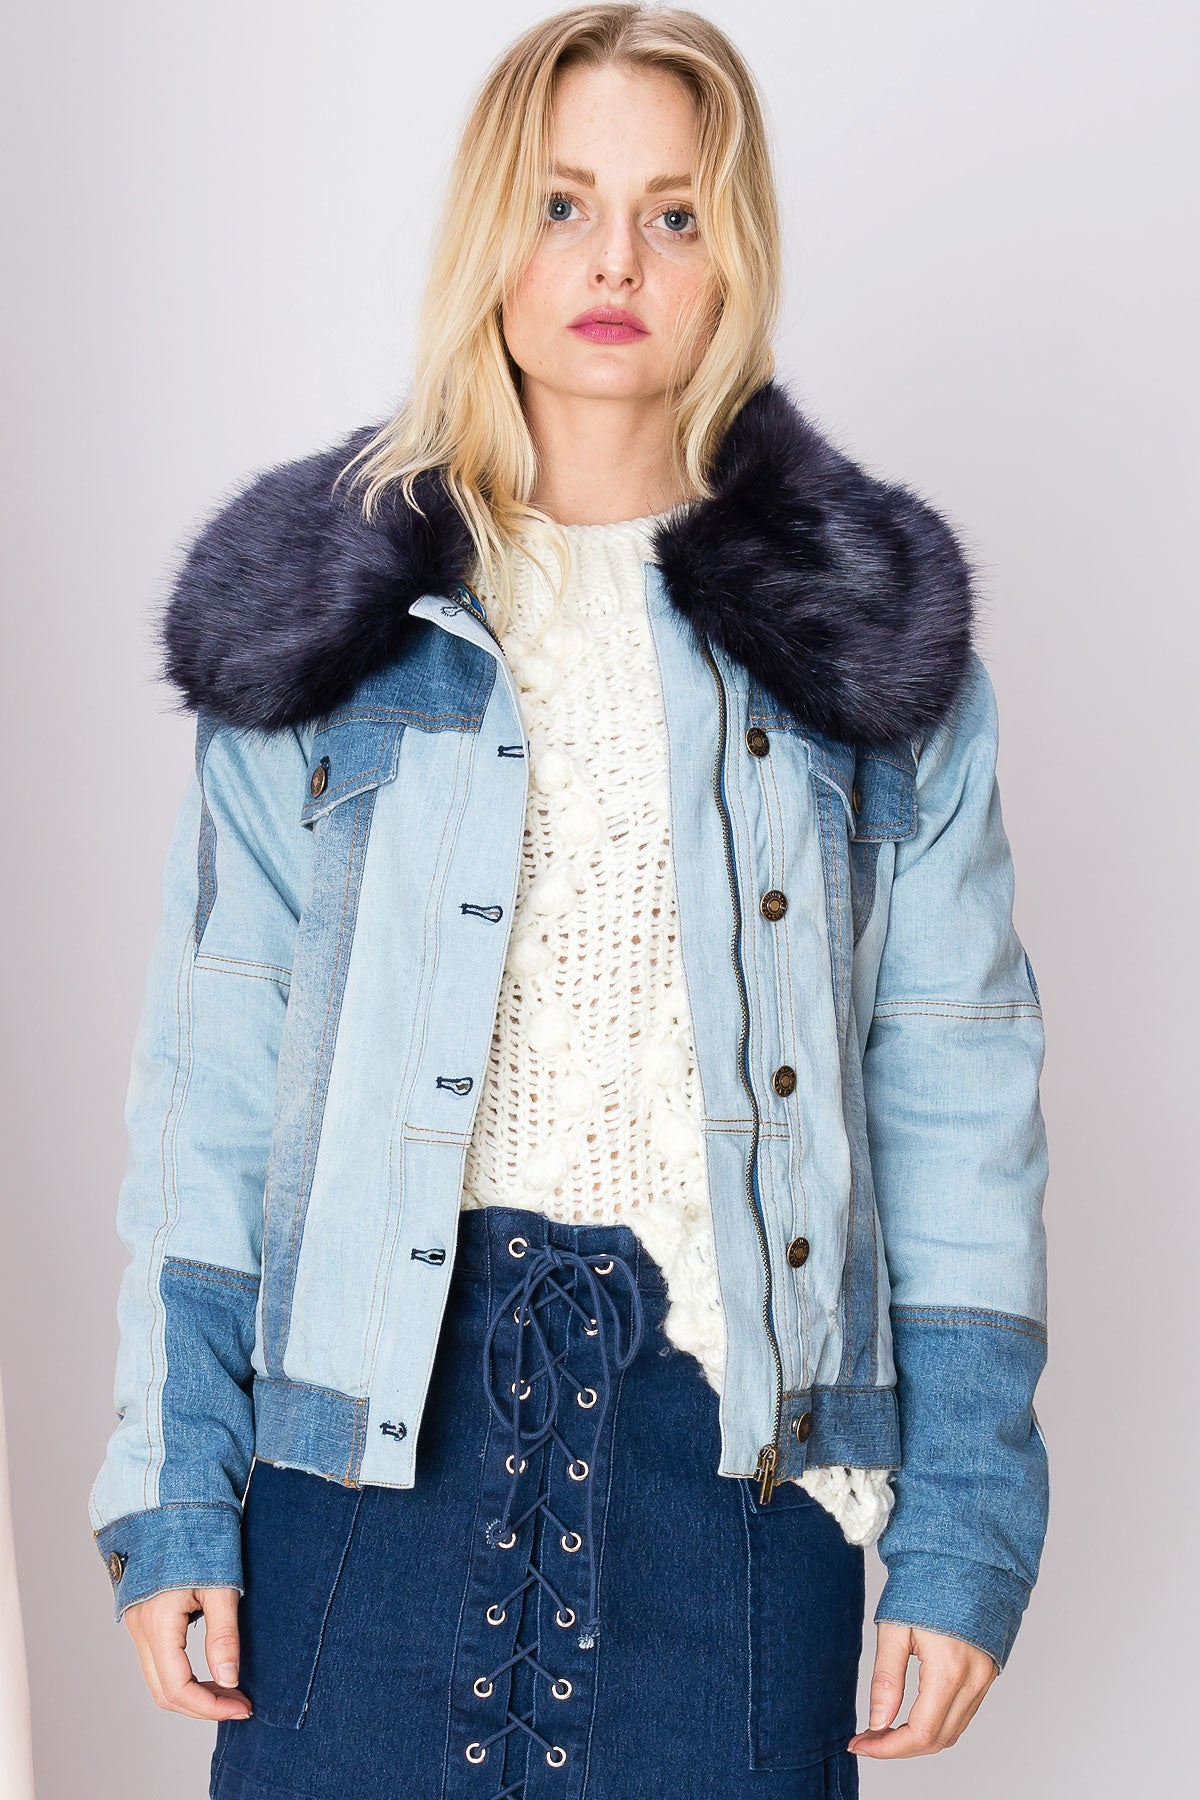 Mara Furry Two Tone Denim Jacket